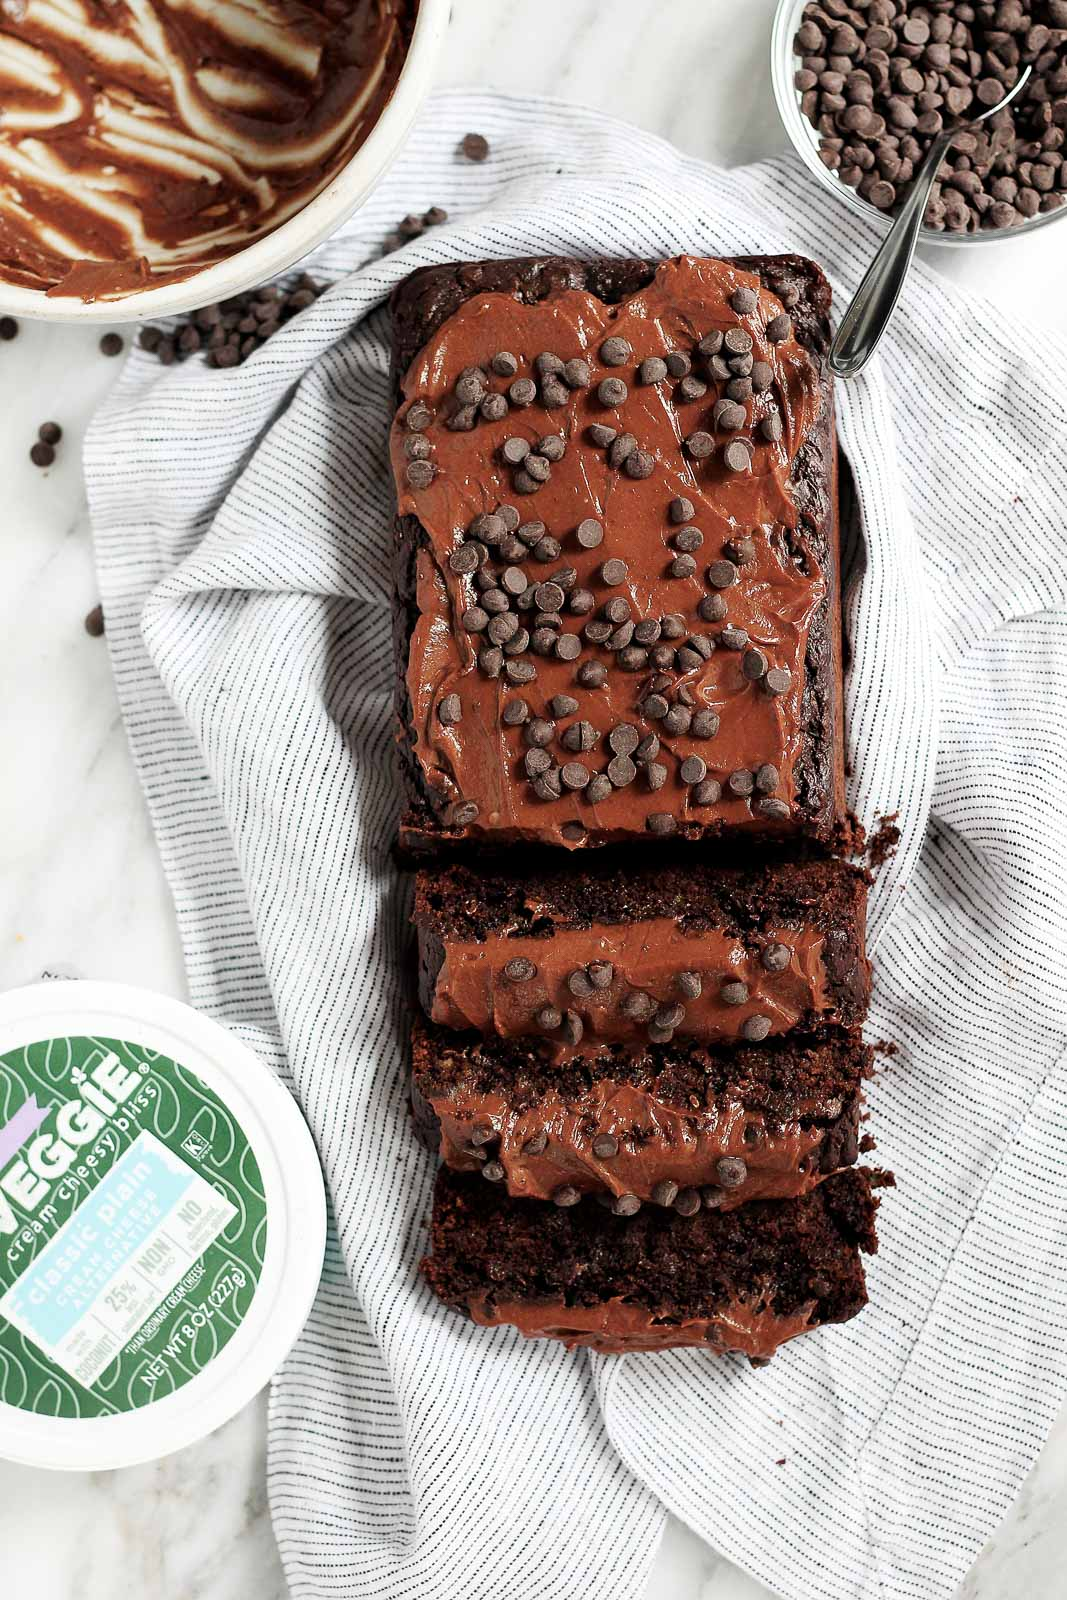 Allergy friendly double chocolate zucchini bread that's gluten free, vegan and nut free! So moist and full of chocolate flavor no one can tell it's healthy or packed with zucchini! A great allergy friendly treat!